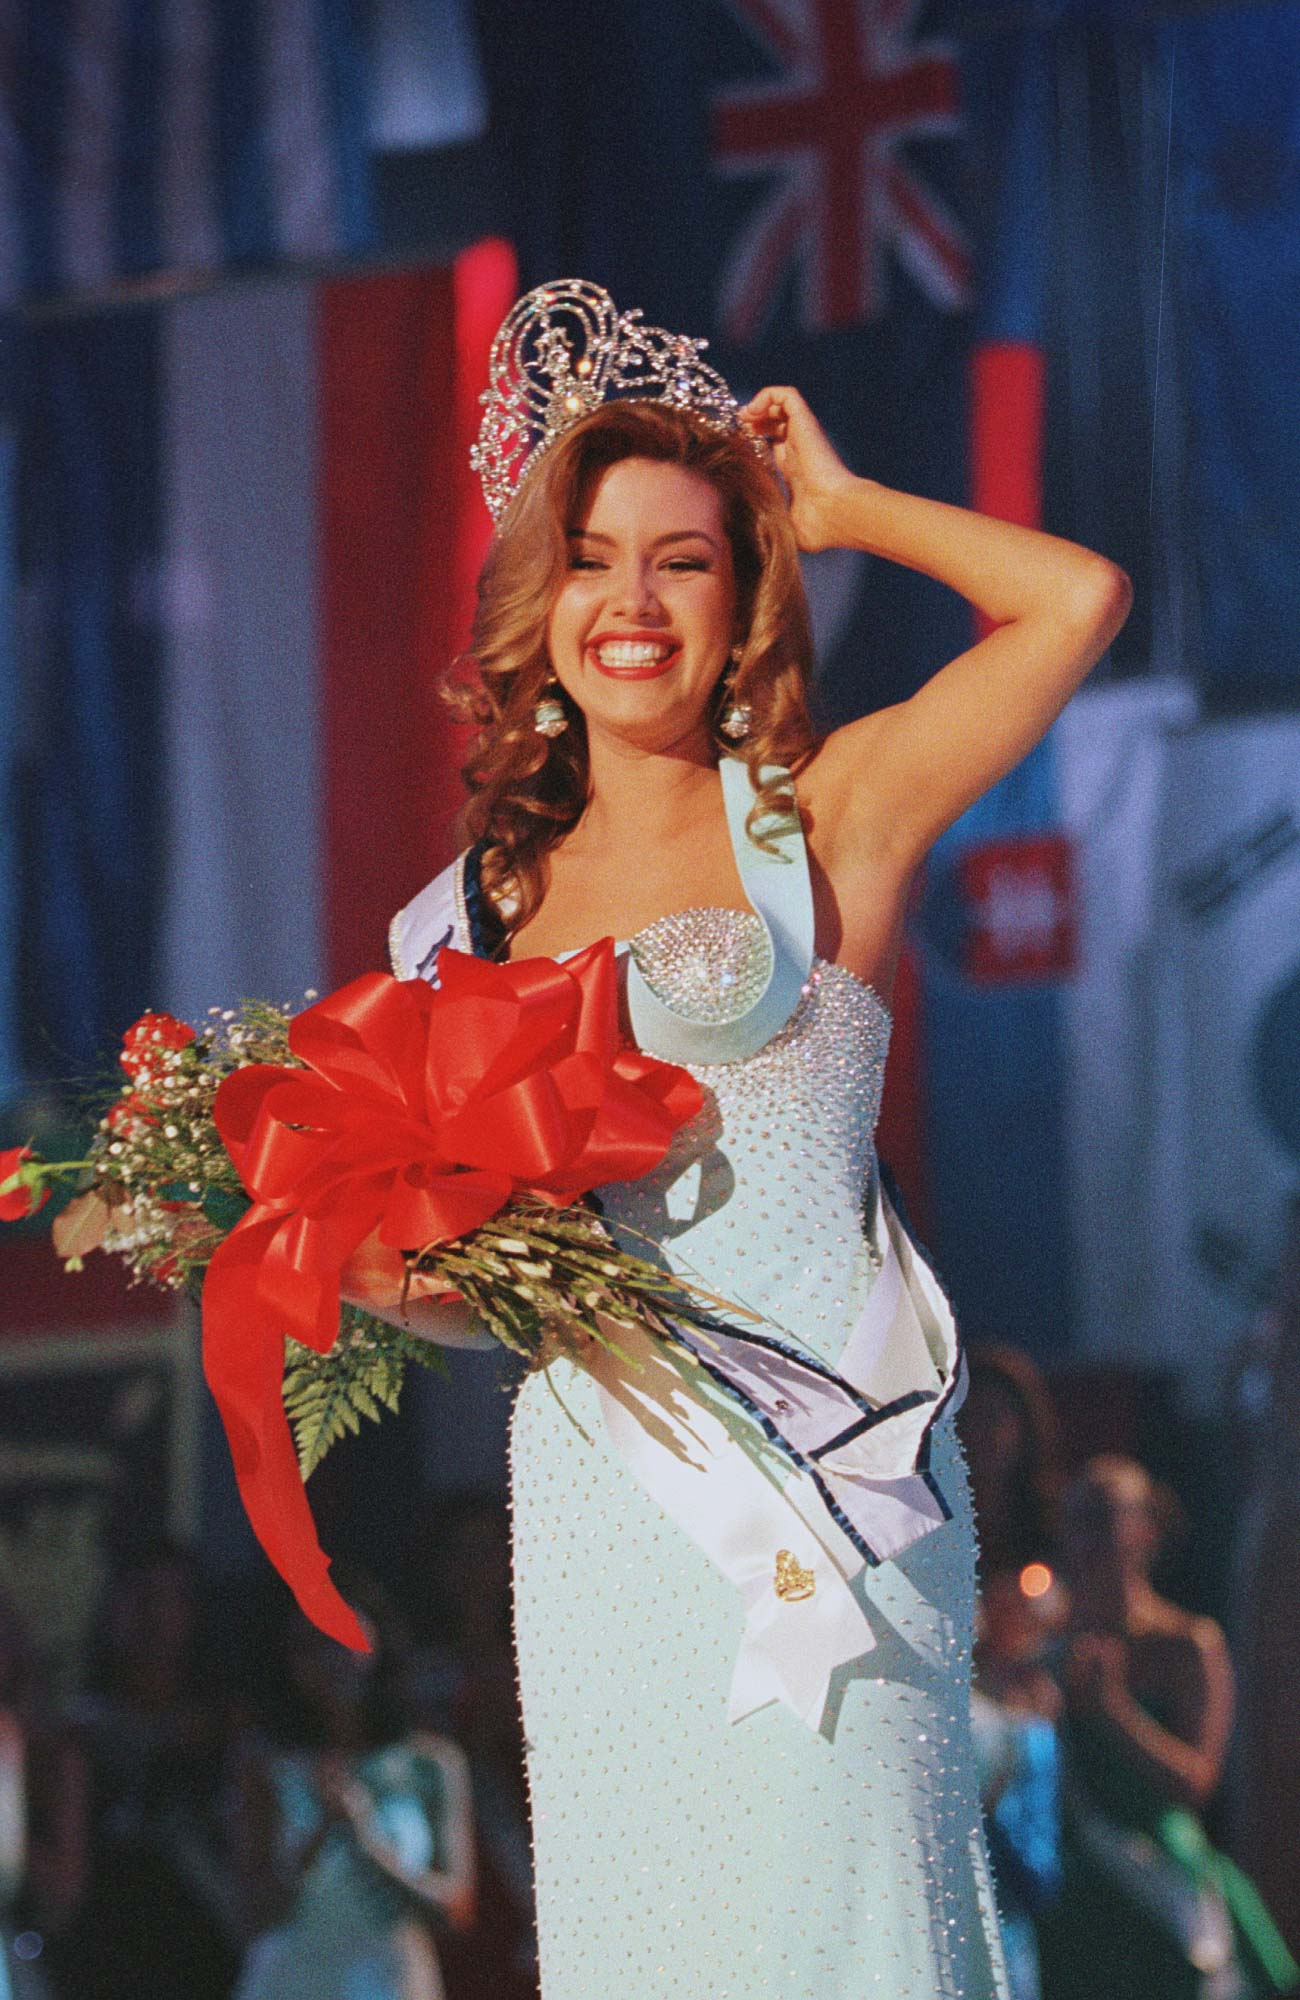 Miss Universe 1996 Alicia Machado from Venezuela